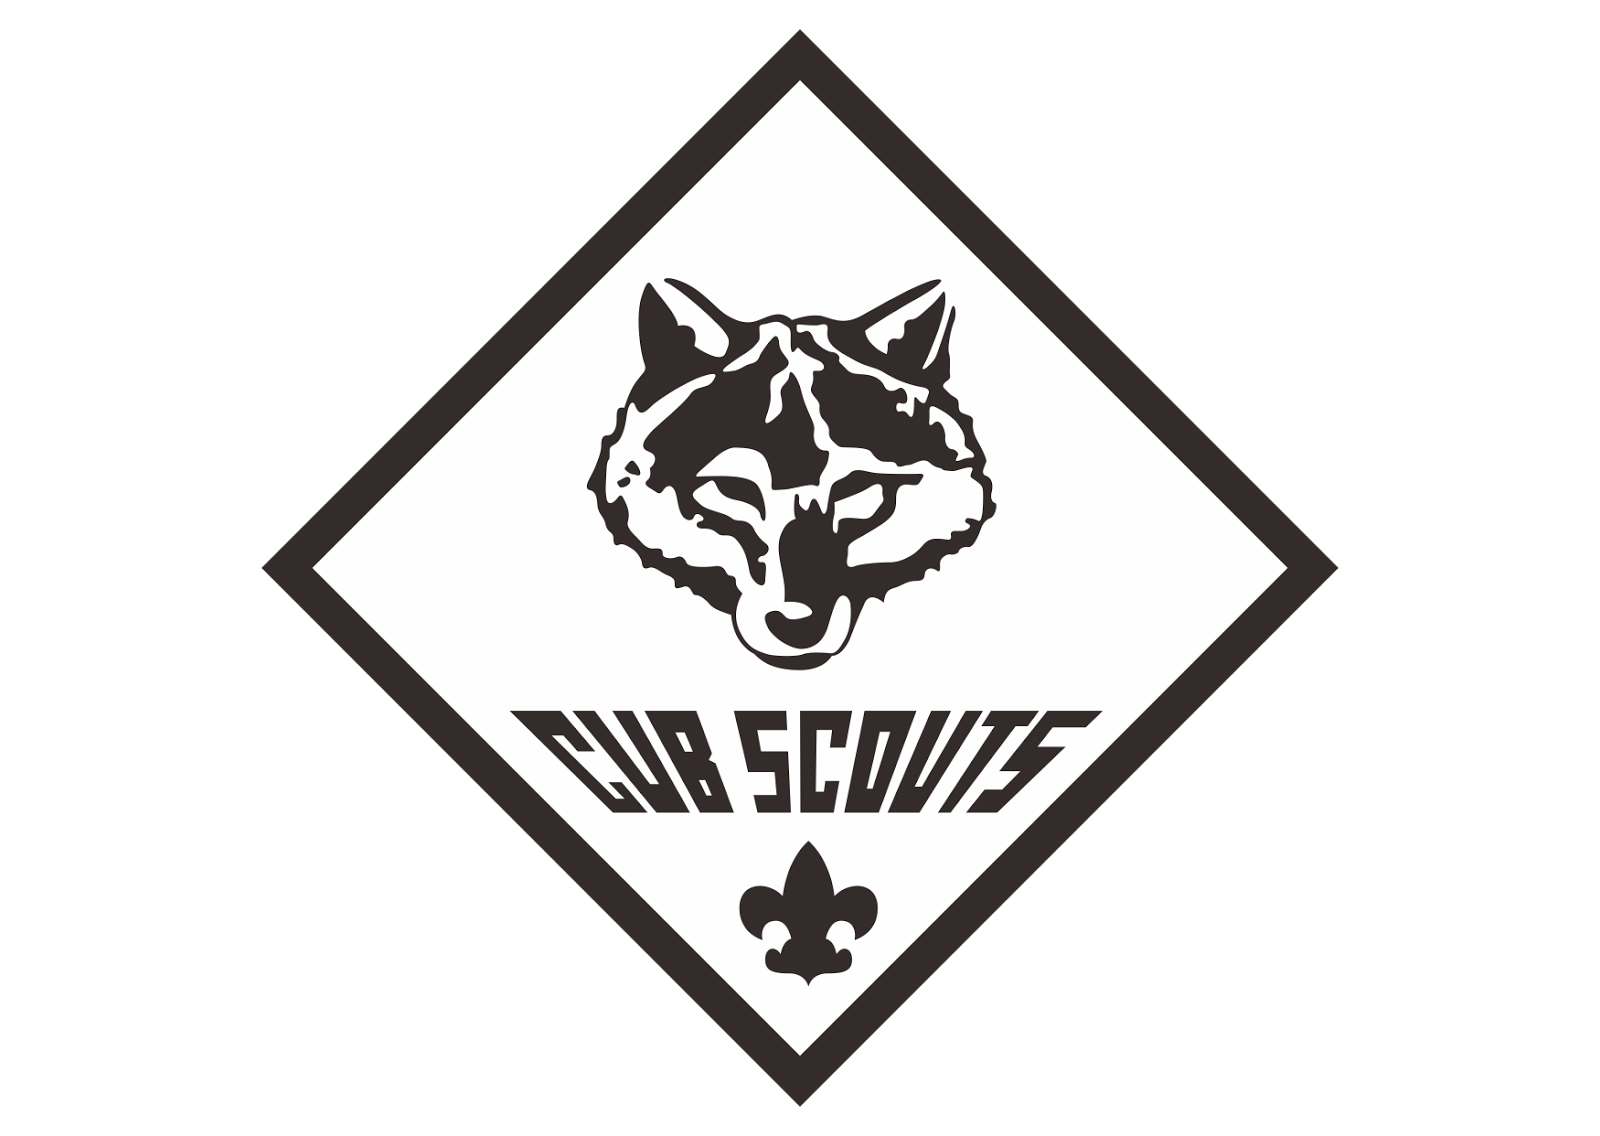 cub scouts logo vector   format cdr  ai  eps  svg  pdf  png boy scout vector free download boy scout logo vector